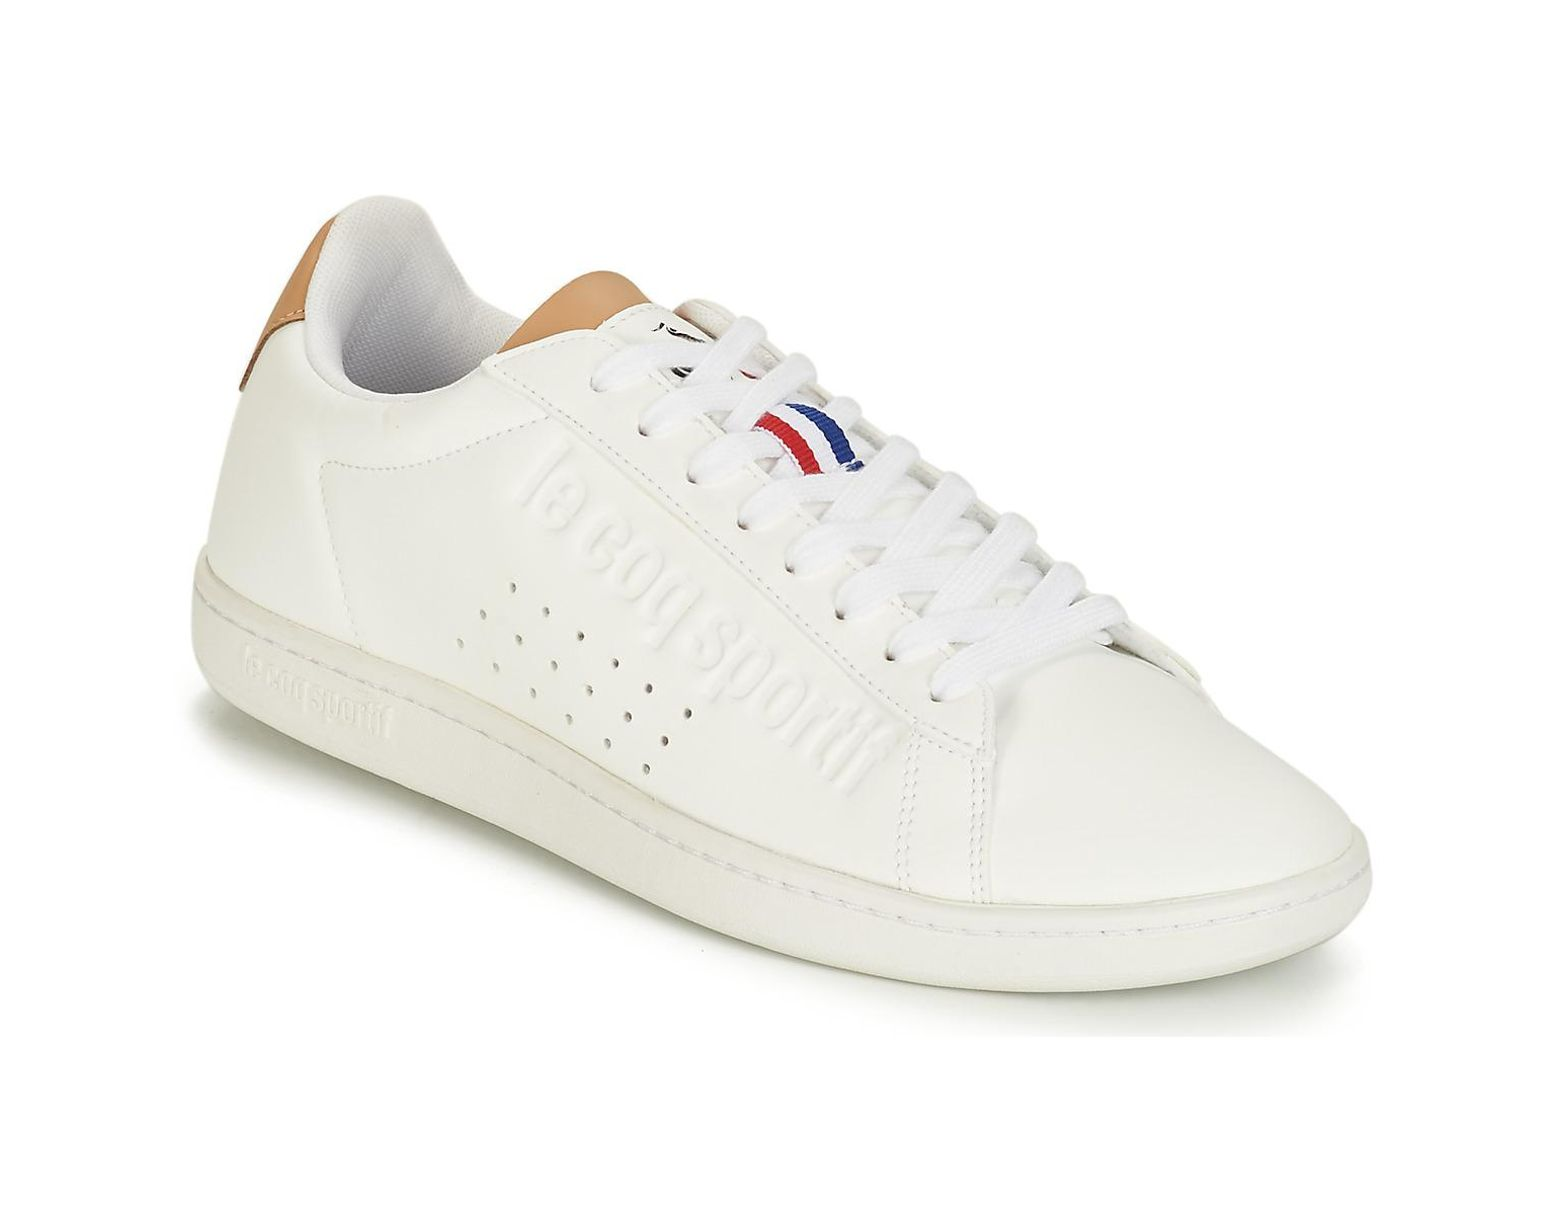 a2eeebc736 Le Coq Sportif Courtset Shoes (trainers) in White for Men - Lyst